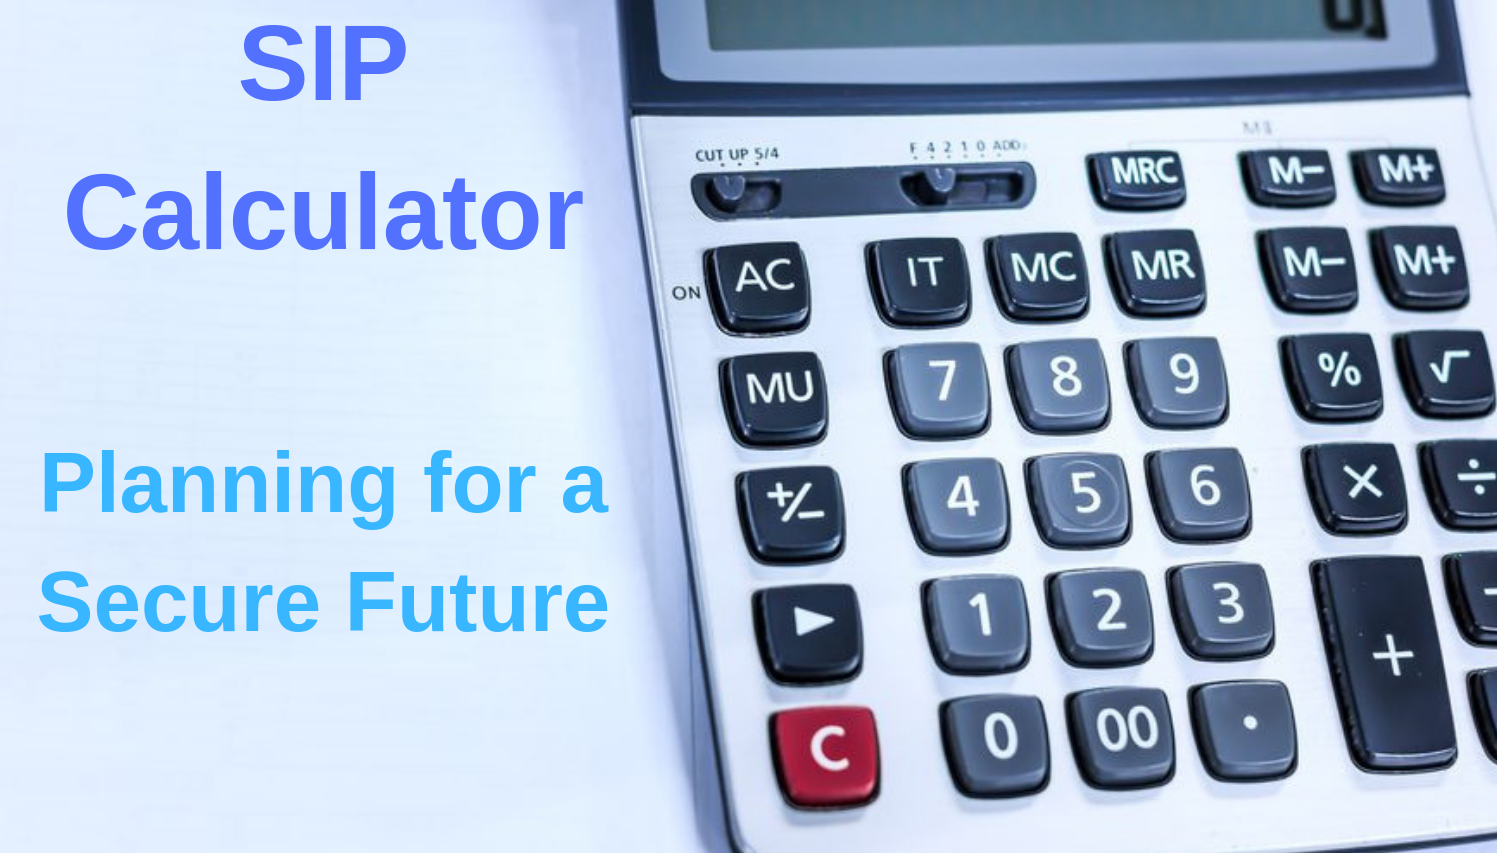 Sip Calculator- The Best Way To Calculate Your Wealth